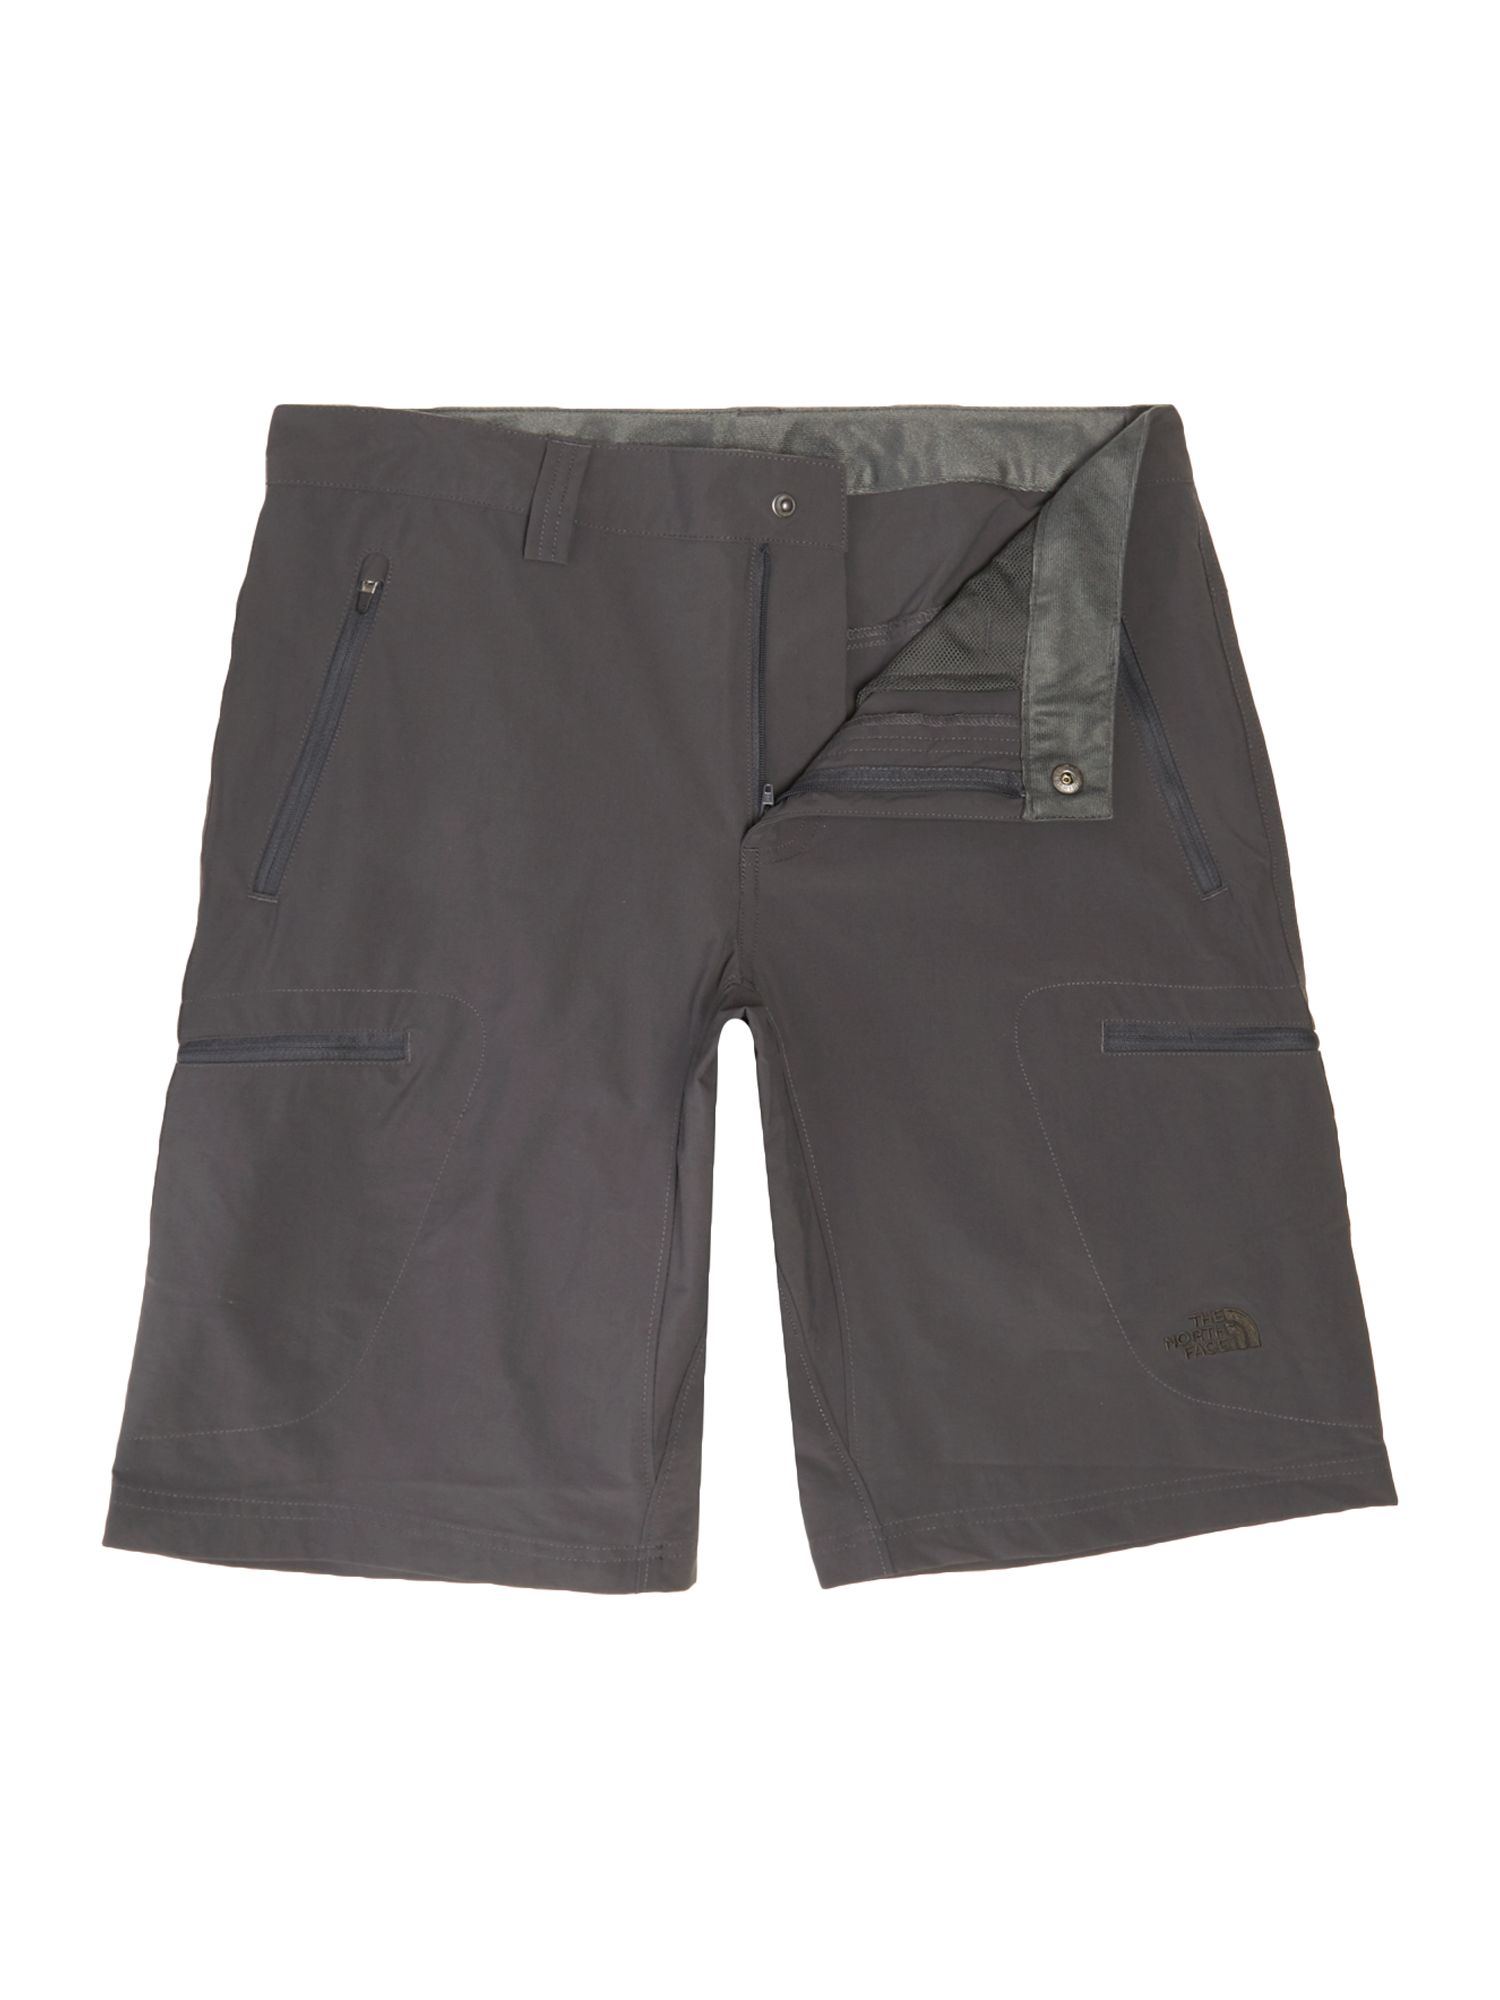 Mens The North Face Exploration logo shorts Slate